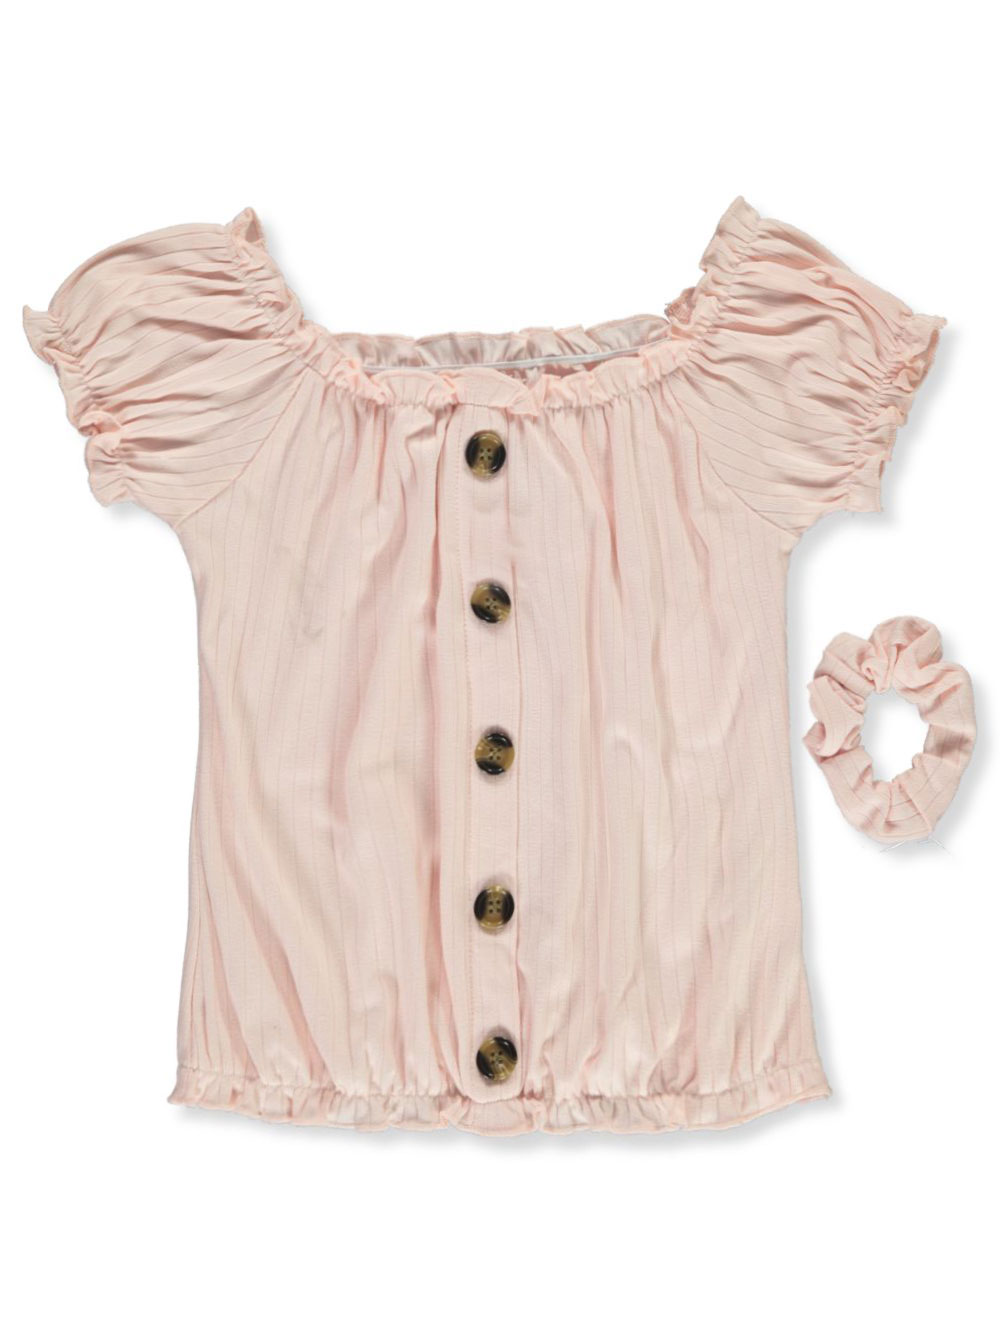 Girls' Peasant Top With Scrunchie